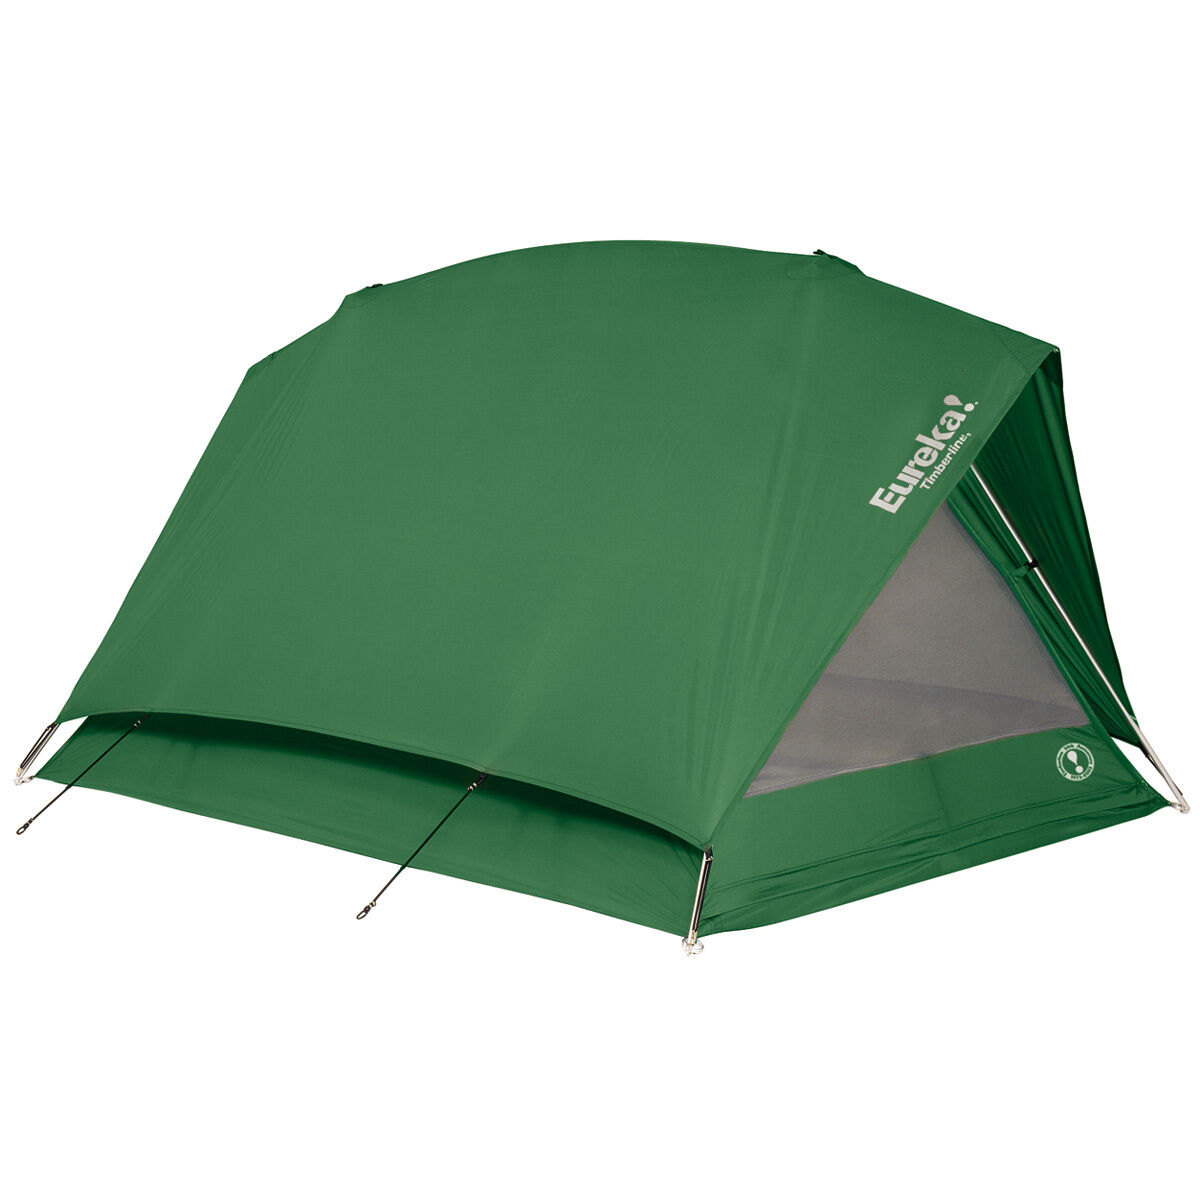 Picture 1 of 4 ...  sc 1 st  eBay & Eureka 4 Person Timberline Backcountry Tentu2013high Quality Easy ...